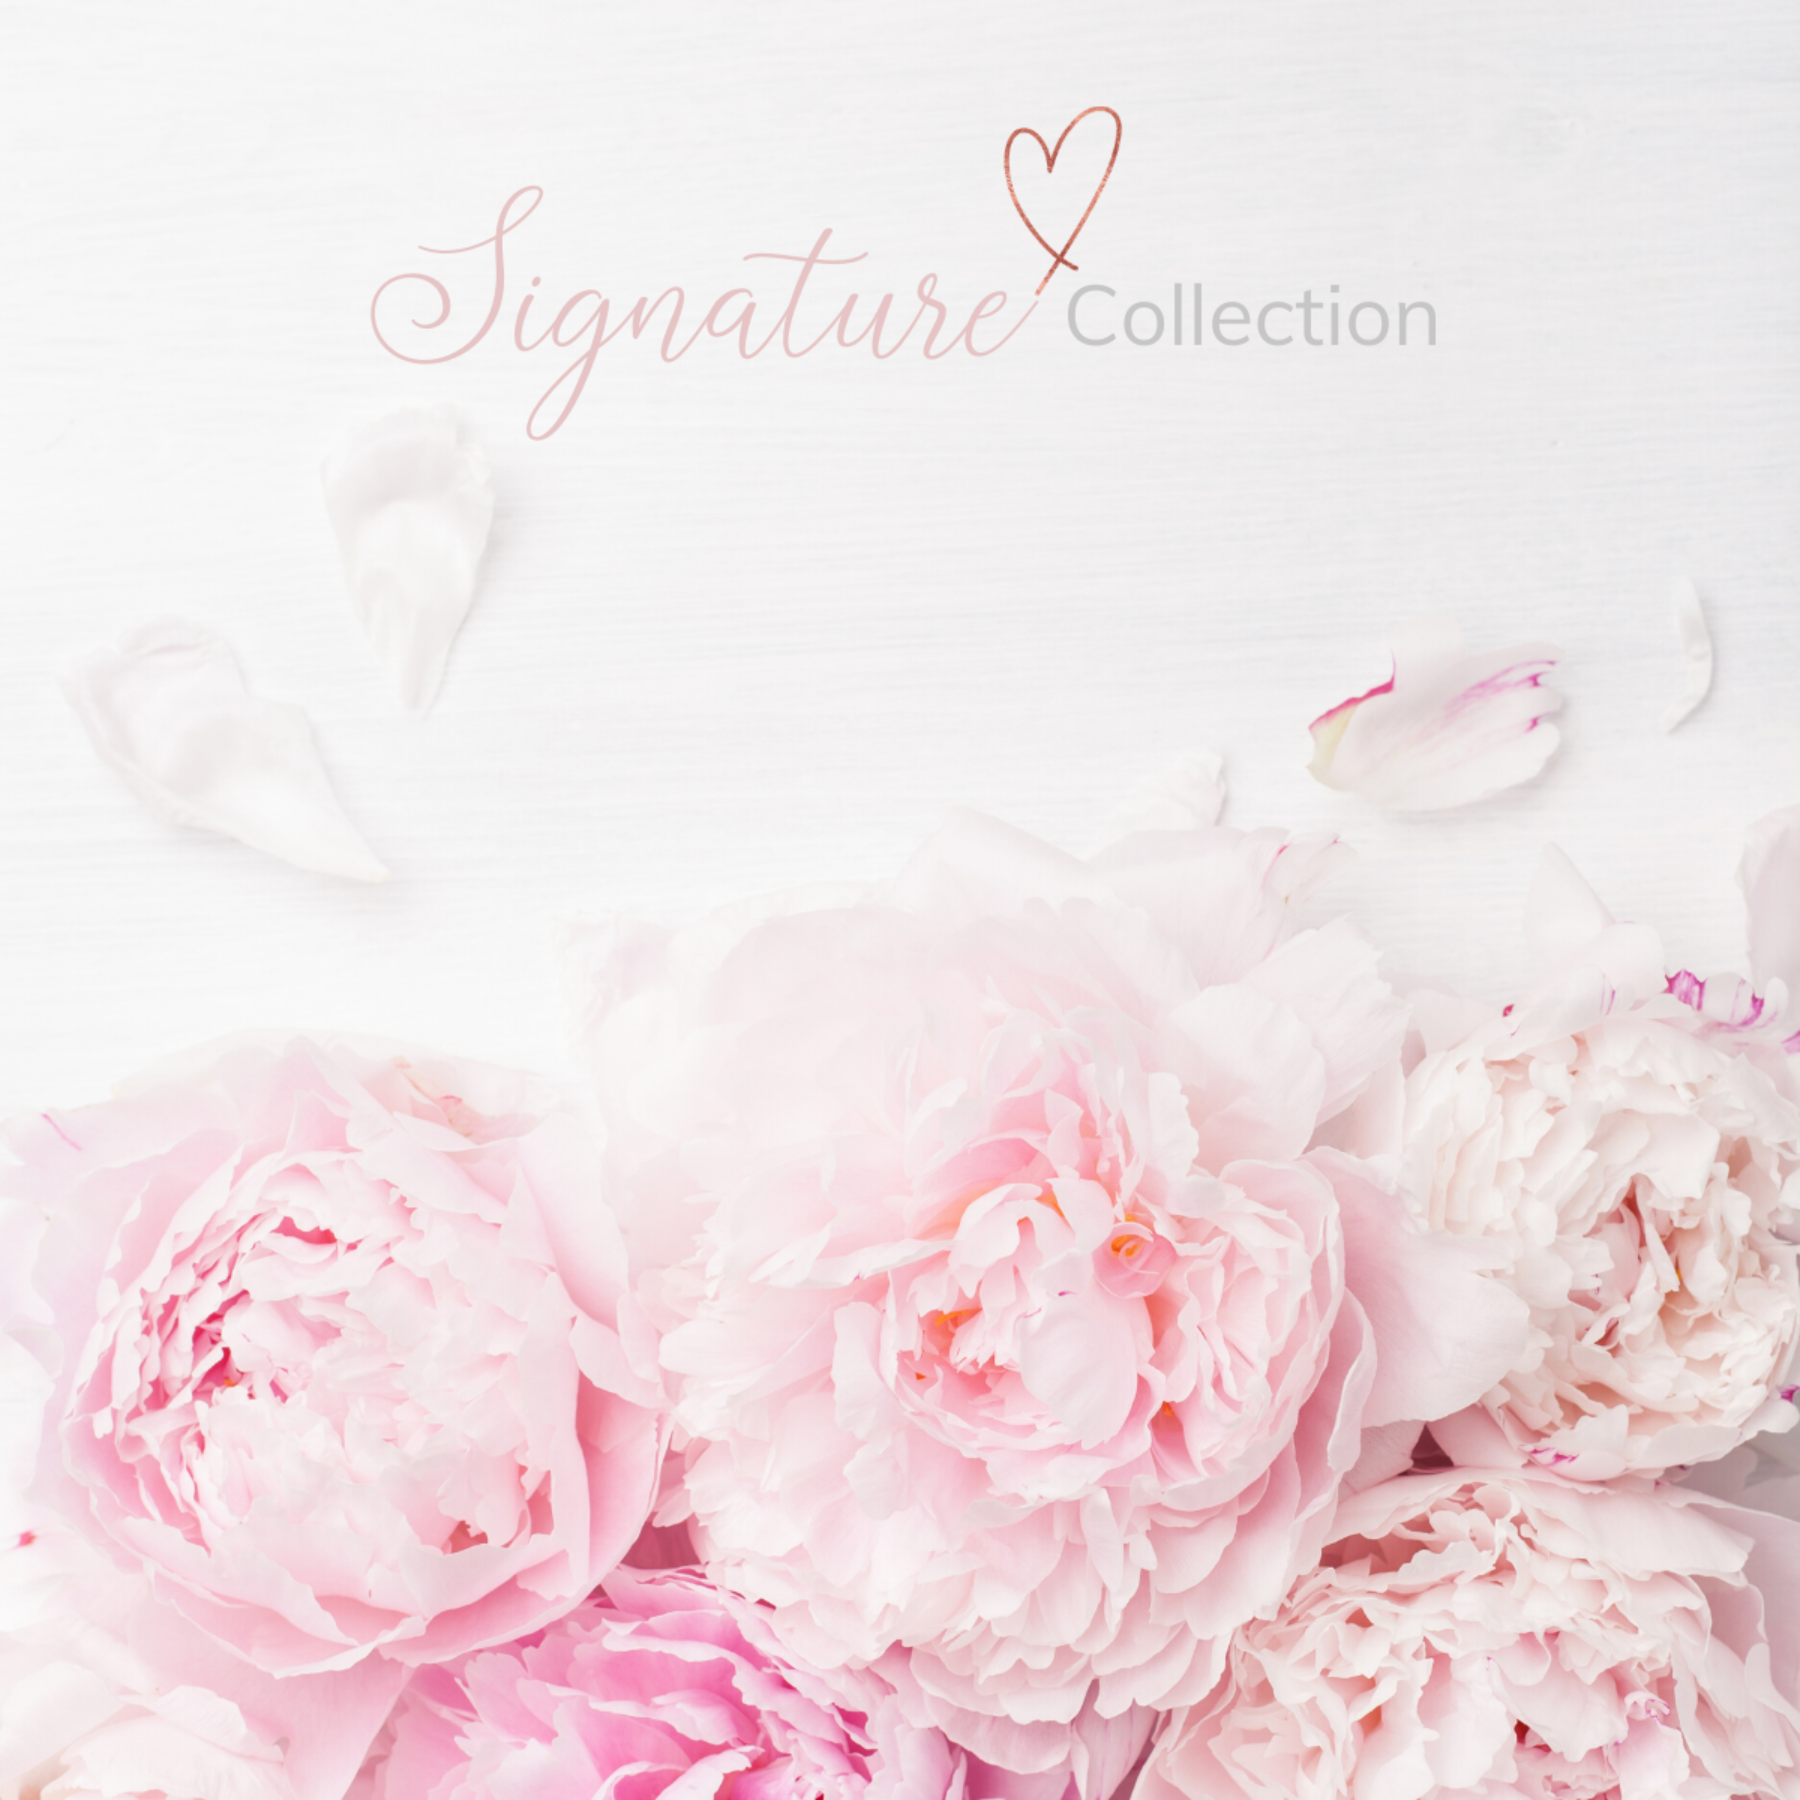 Signature Collection Wax Melts